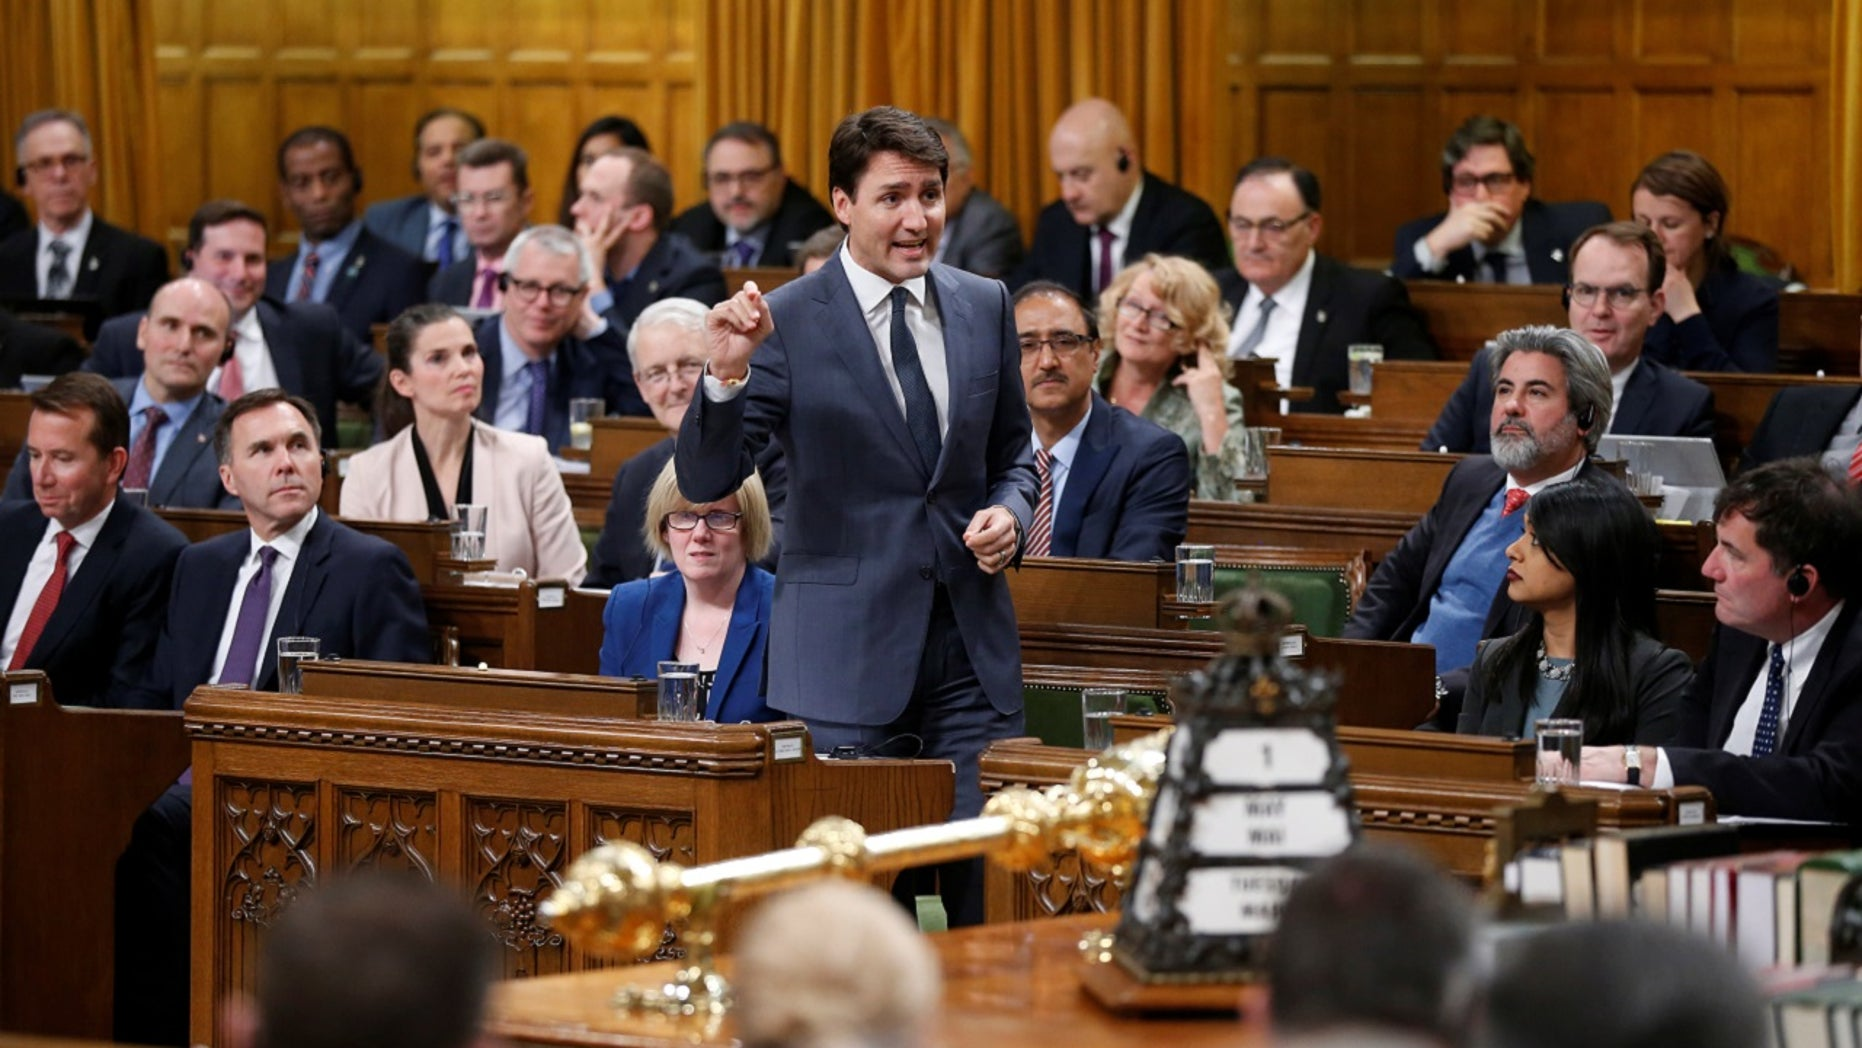 Canada's Prime Minister Justin Trudeau speaks during Question Period in the House of Commons on Parliament Hill in Ottawa, Ontario, Canada, May 1, 2018.